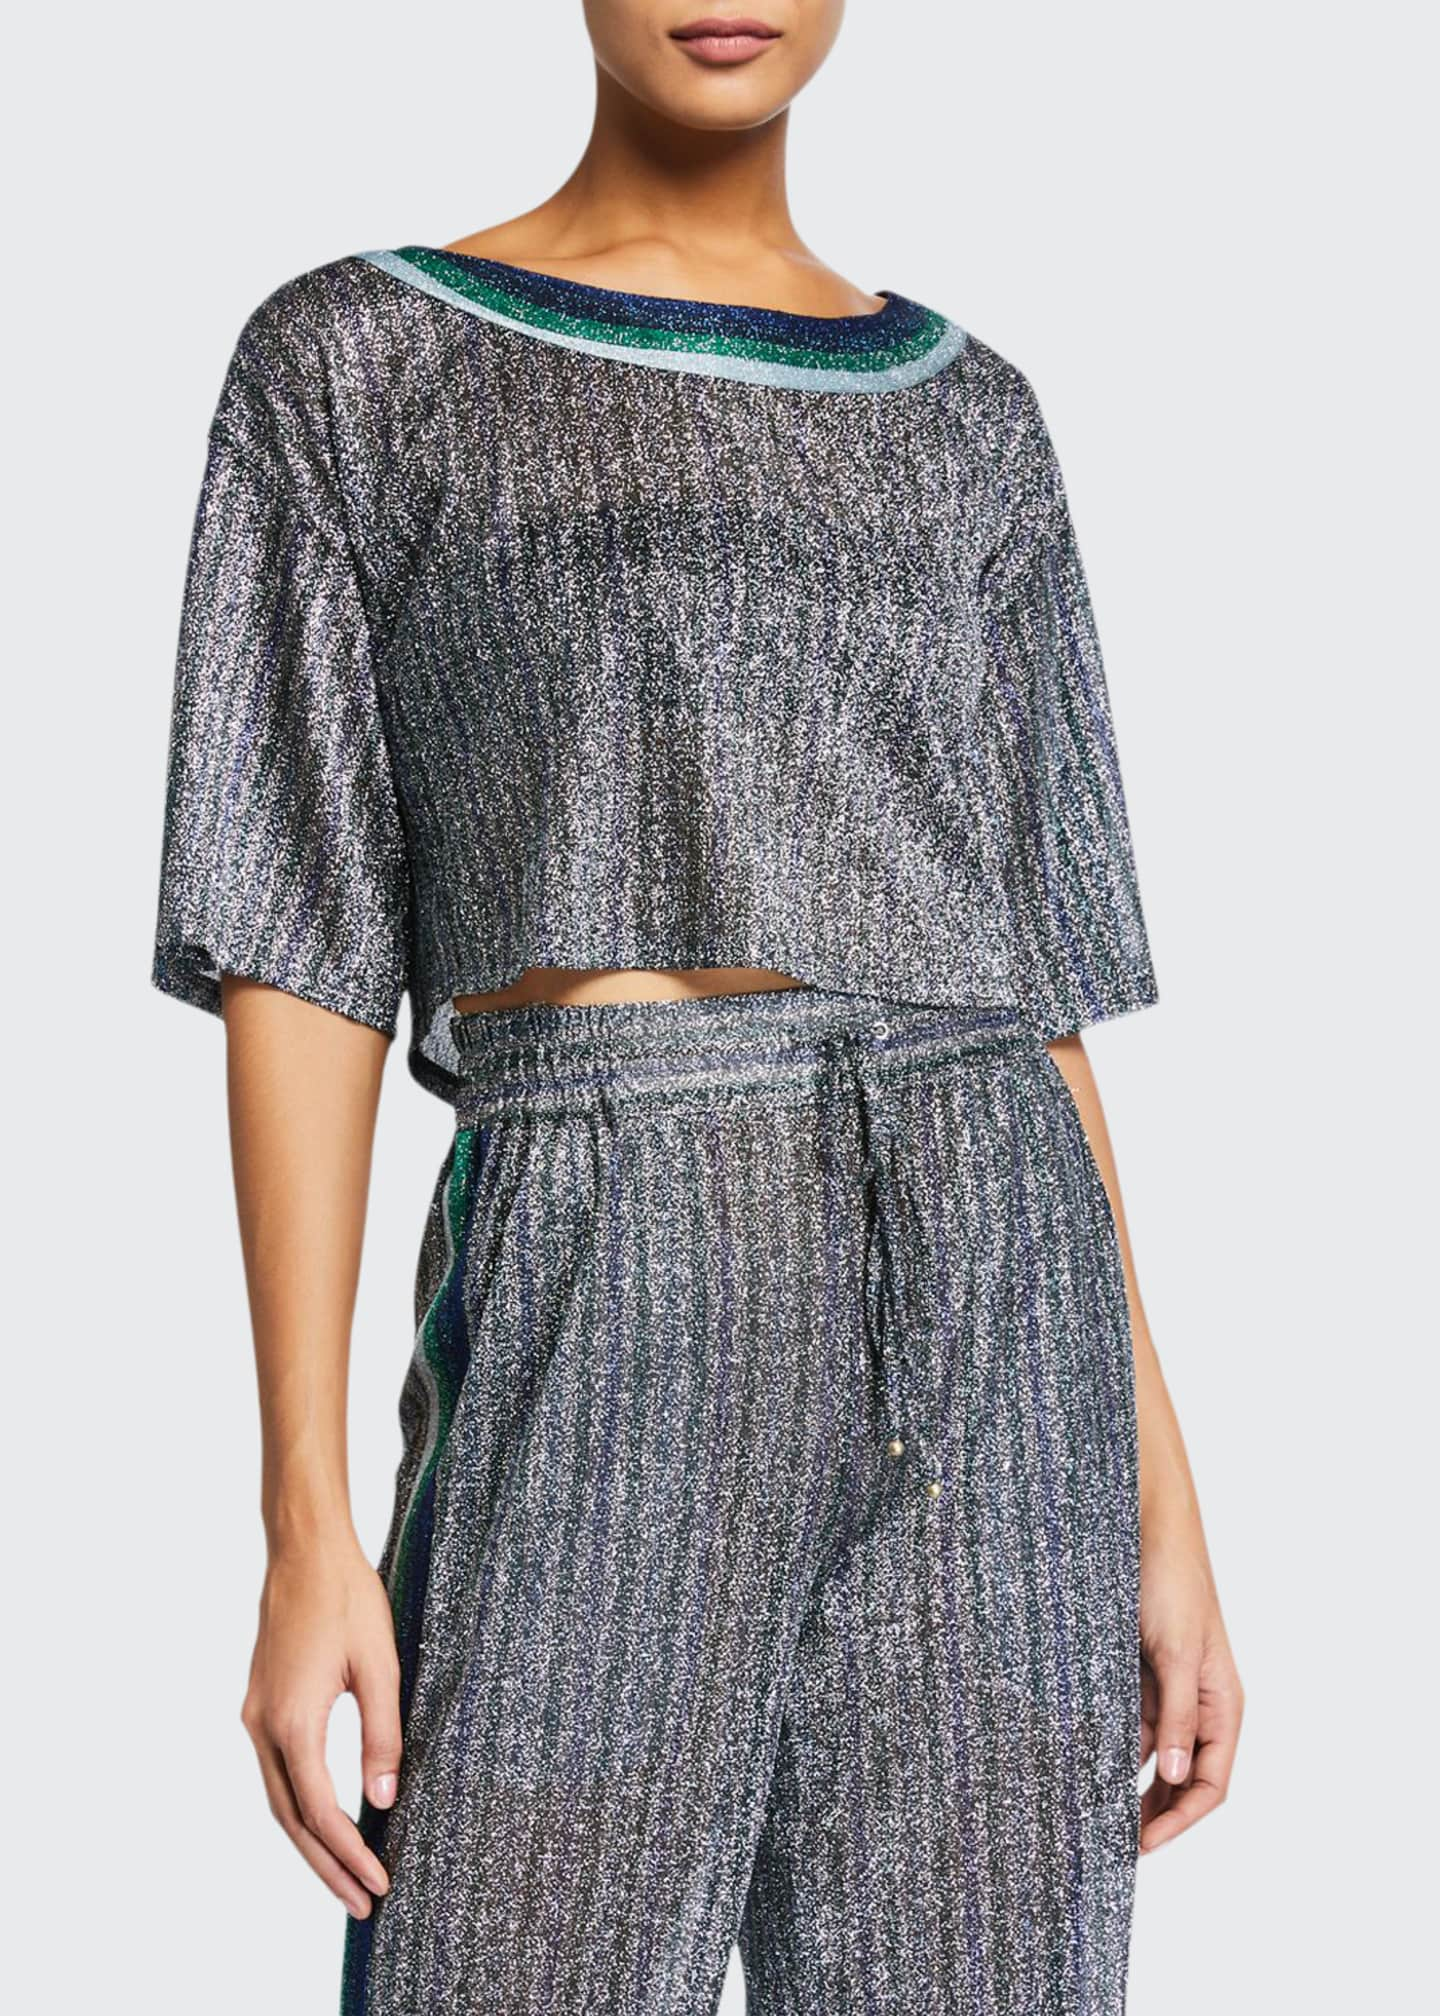 Jonathan Simkhai Cropped Metallic Round-Neck Coverup Tee